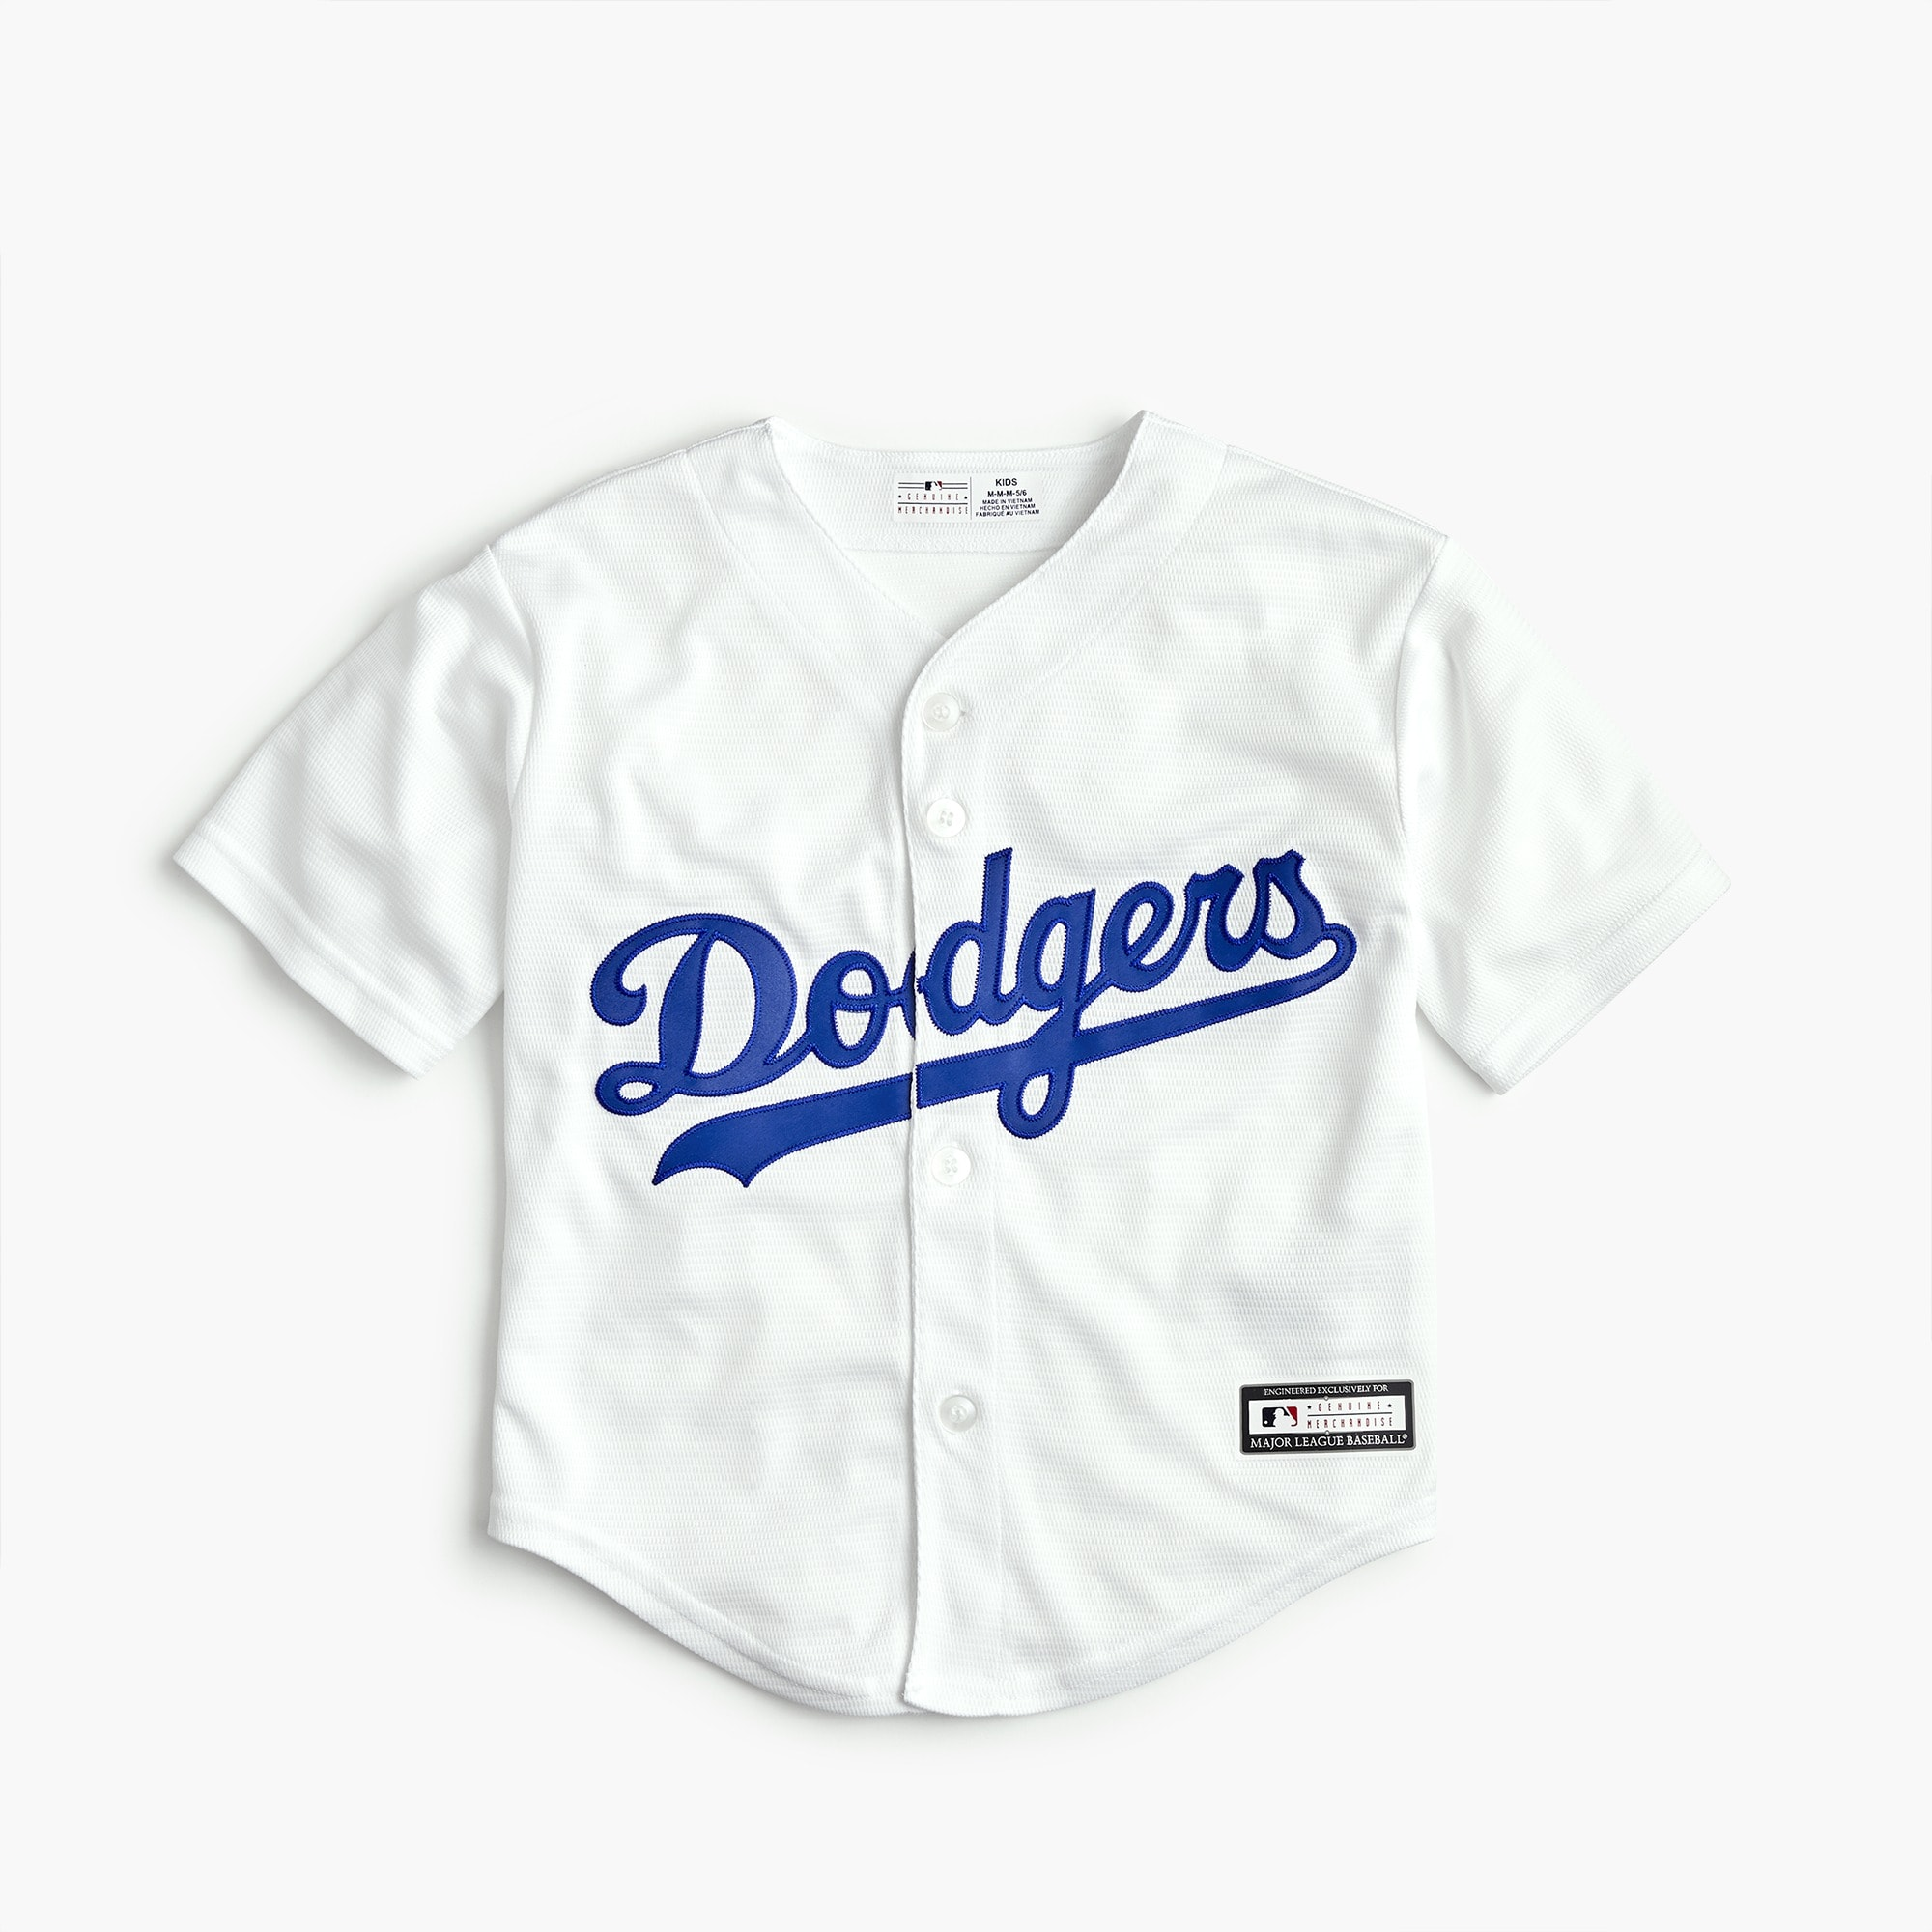 Kids' Los Angeles Dodgers jersey boy new arrivals c